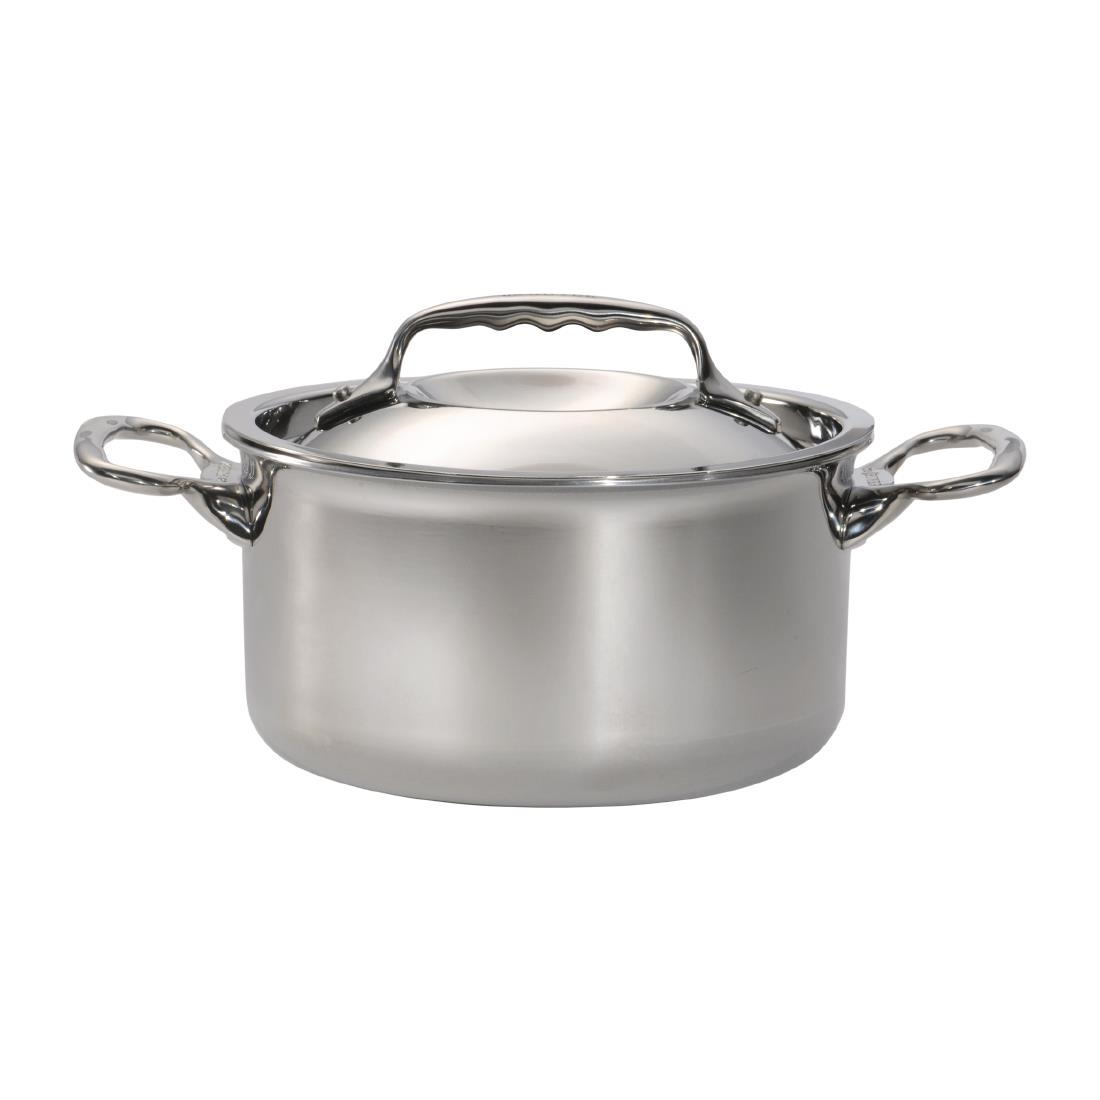 Image of DeBuyer Affinity Stainless Steel Stew Pan With Lid 24 cm